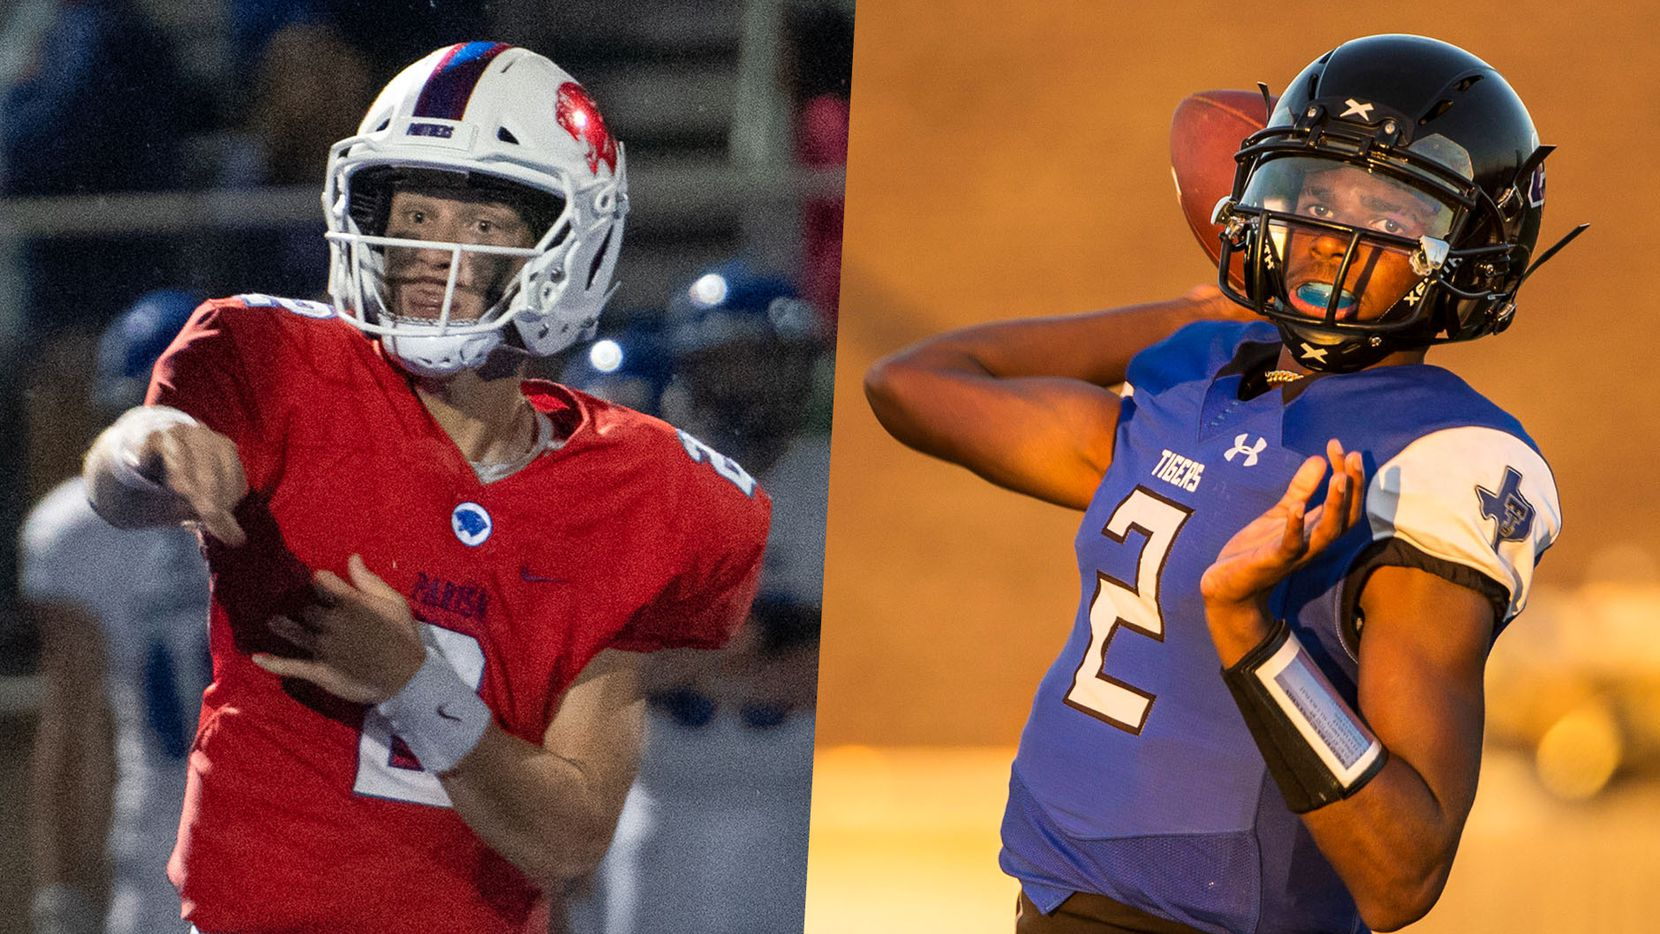 Parish Episcopal's Preston Stone (left) and TC-Cedar Hill's Shedeur Sanders (right).